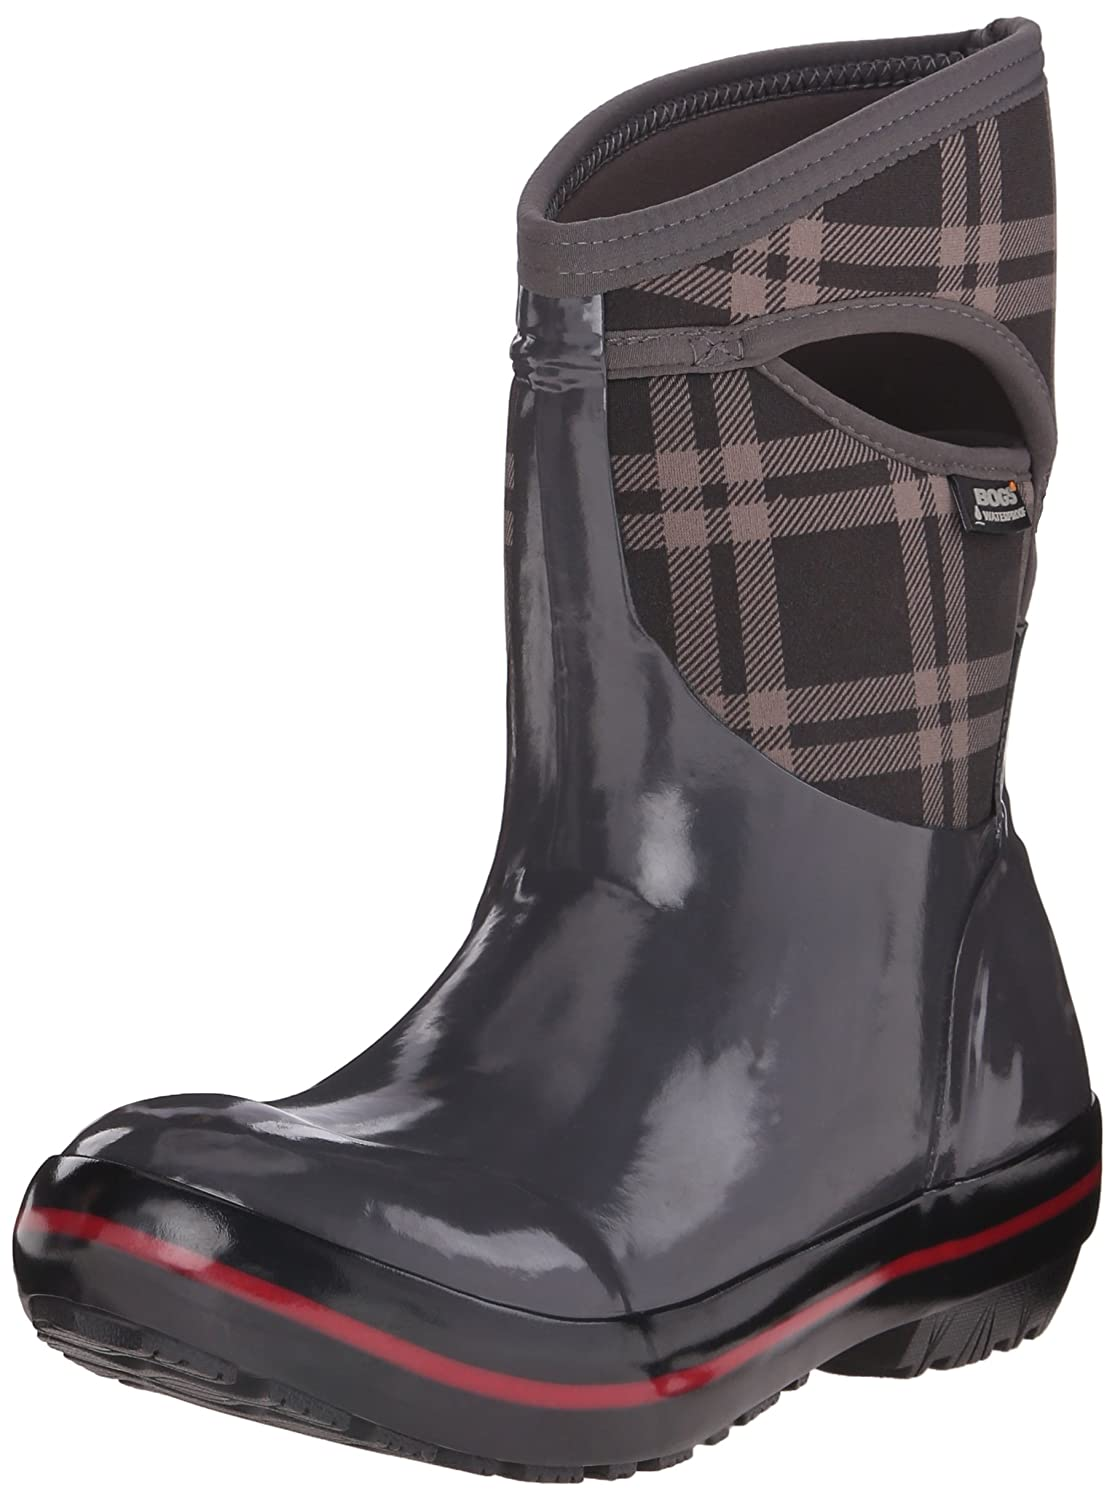 Bogs Women's Plimsoll Plaid Mid Winter Snow Boot B00QMMERIQ 6 B(M) US|Dark Gray